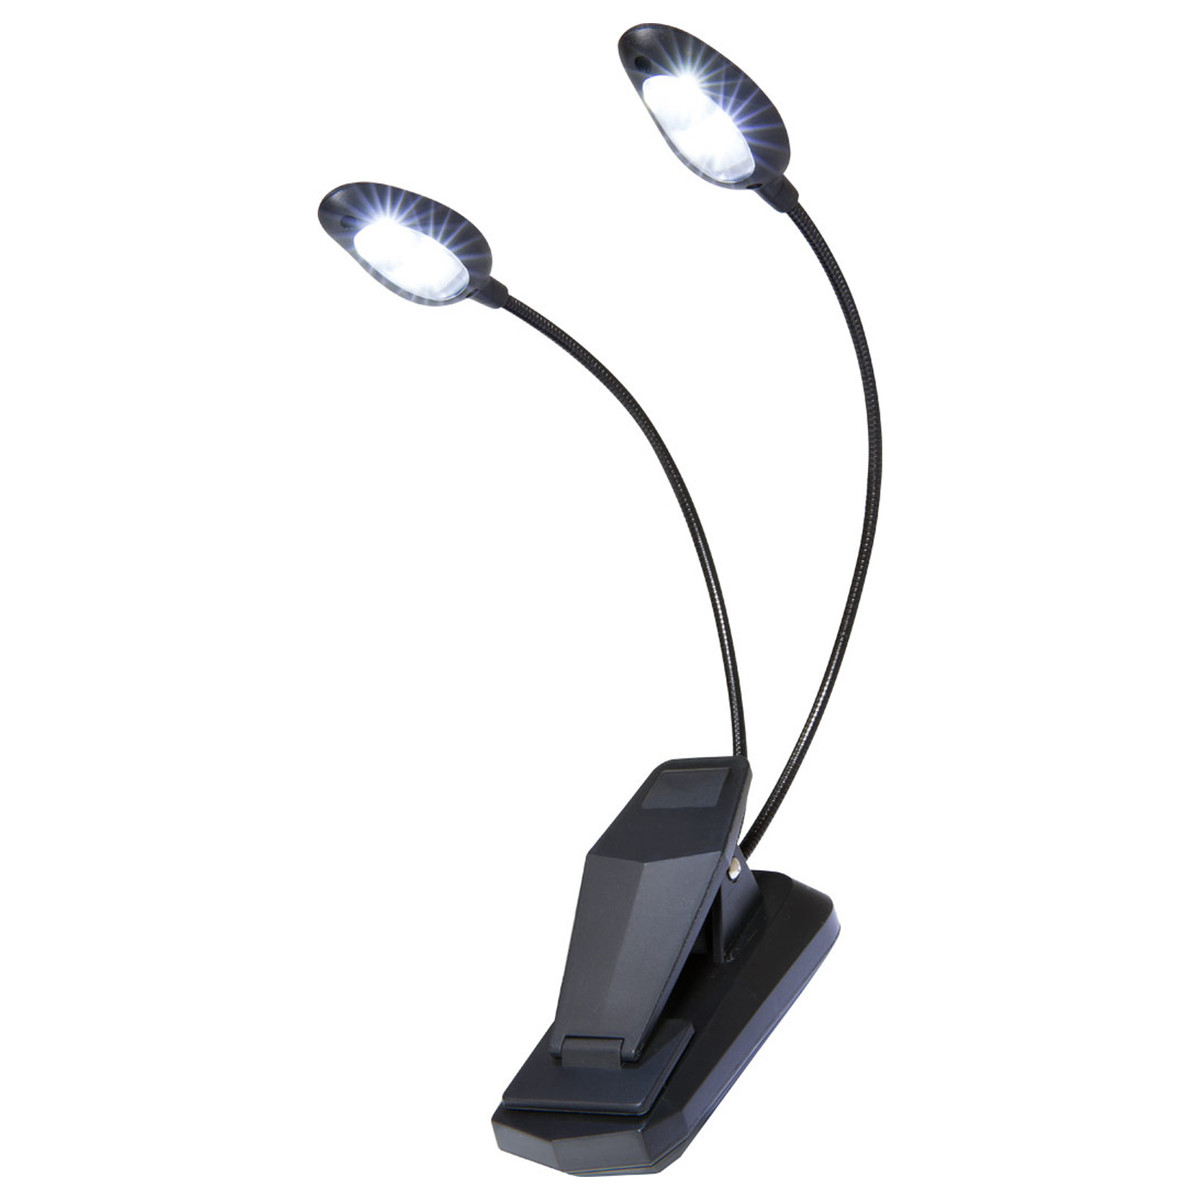 Image of Roland Dual LED Clip Light 4 Bulbs